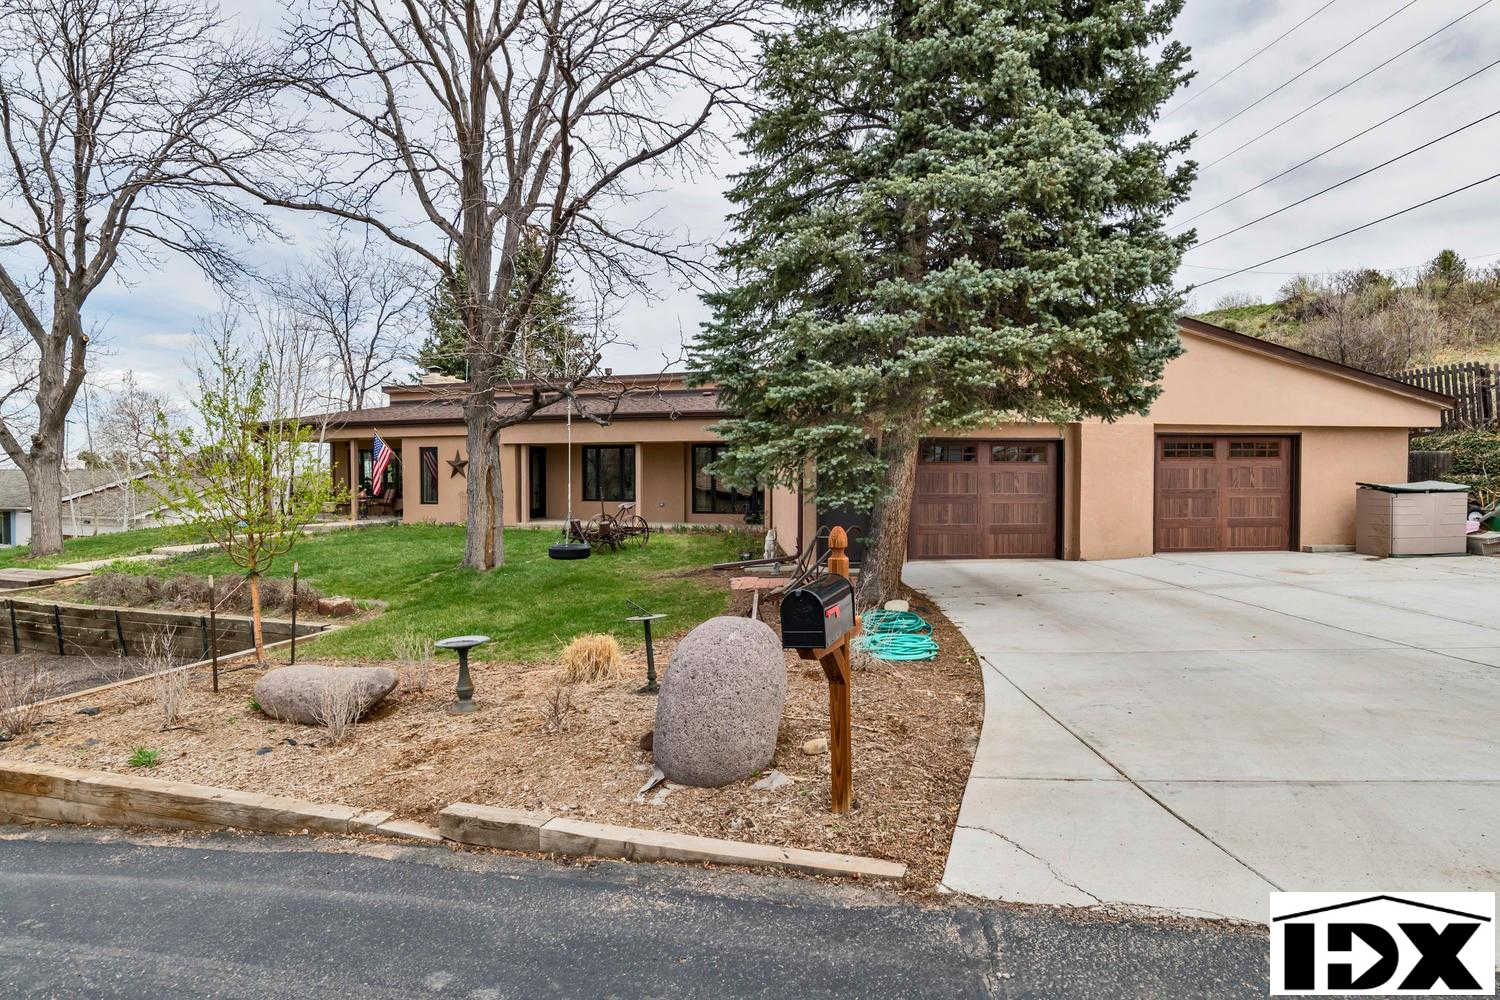 1520 Whippoorwill Drive, Lakewood, CO 80215 now has a new price of $750,000!